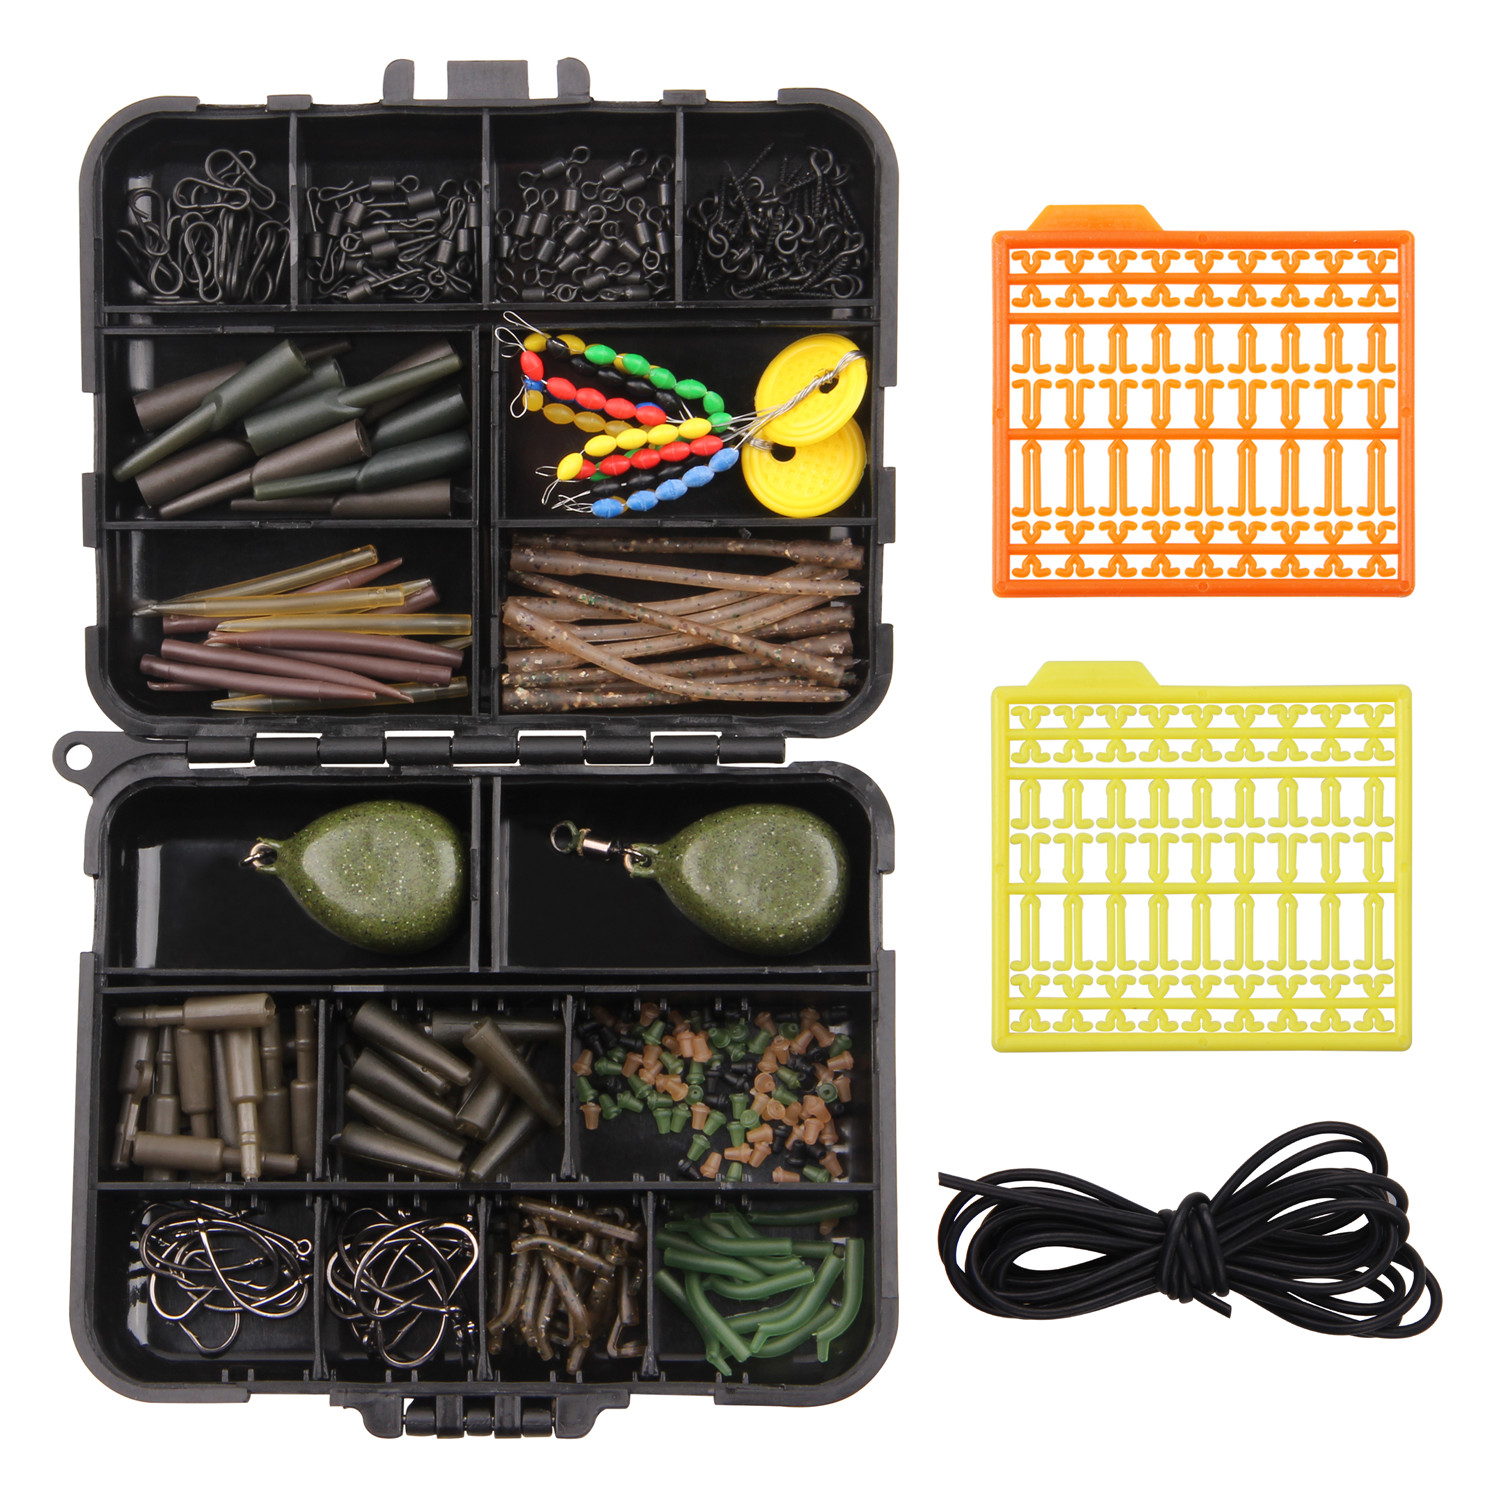 217pcs/box Carp Fishing Tackle Box Rigs Safety Clips Anti Tangle Sleeves Hooks Swivel For Carp Fishing Connector Accessories